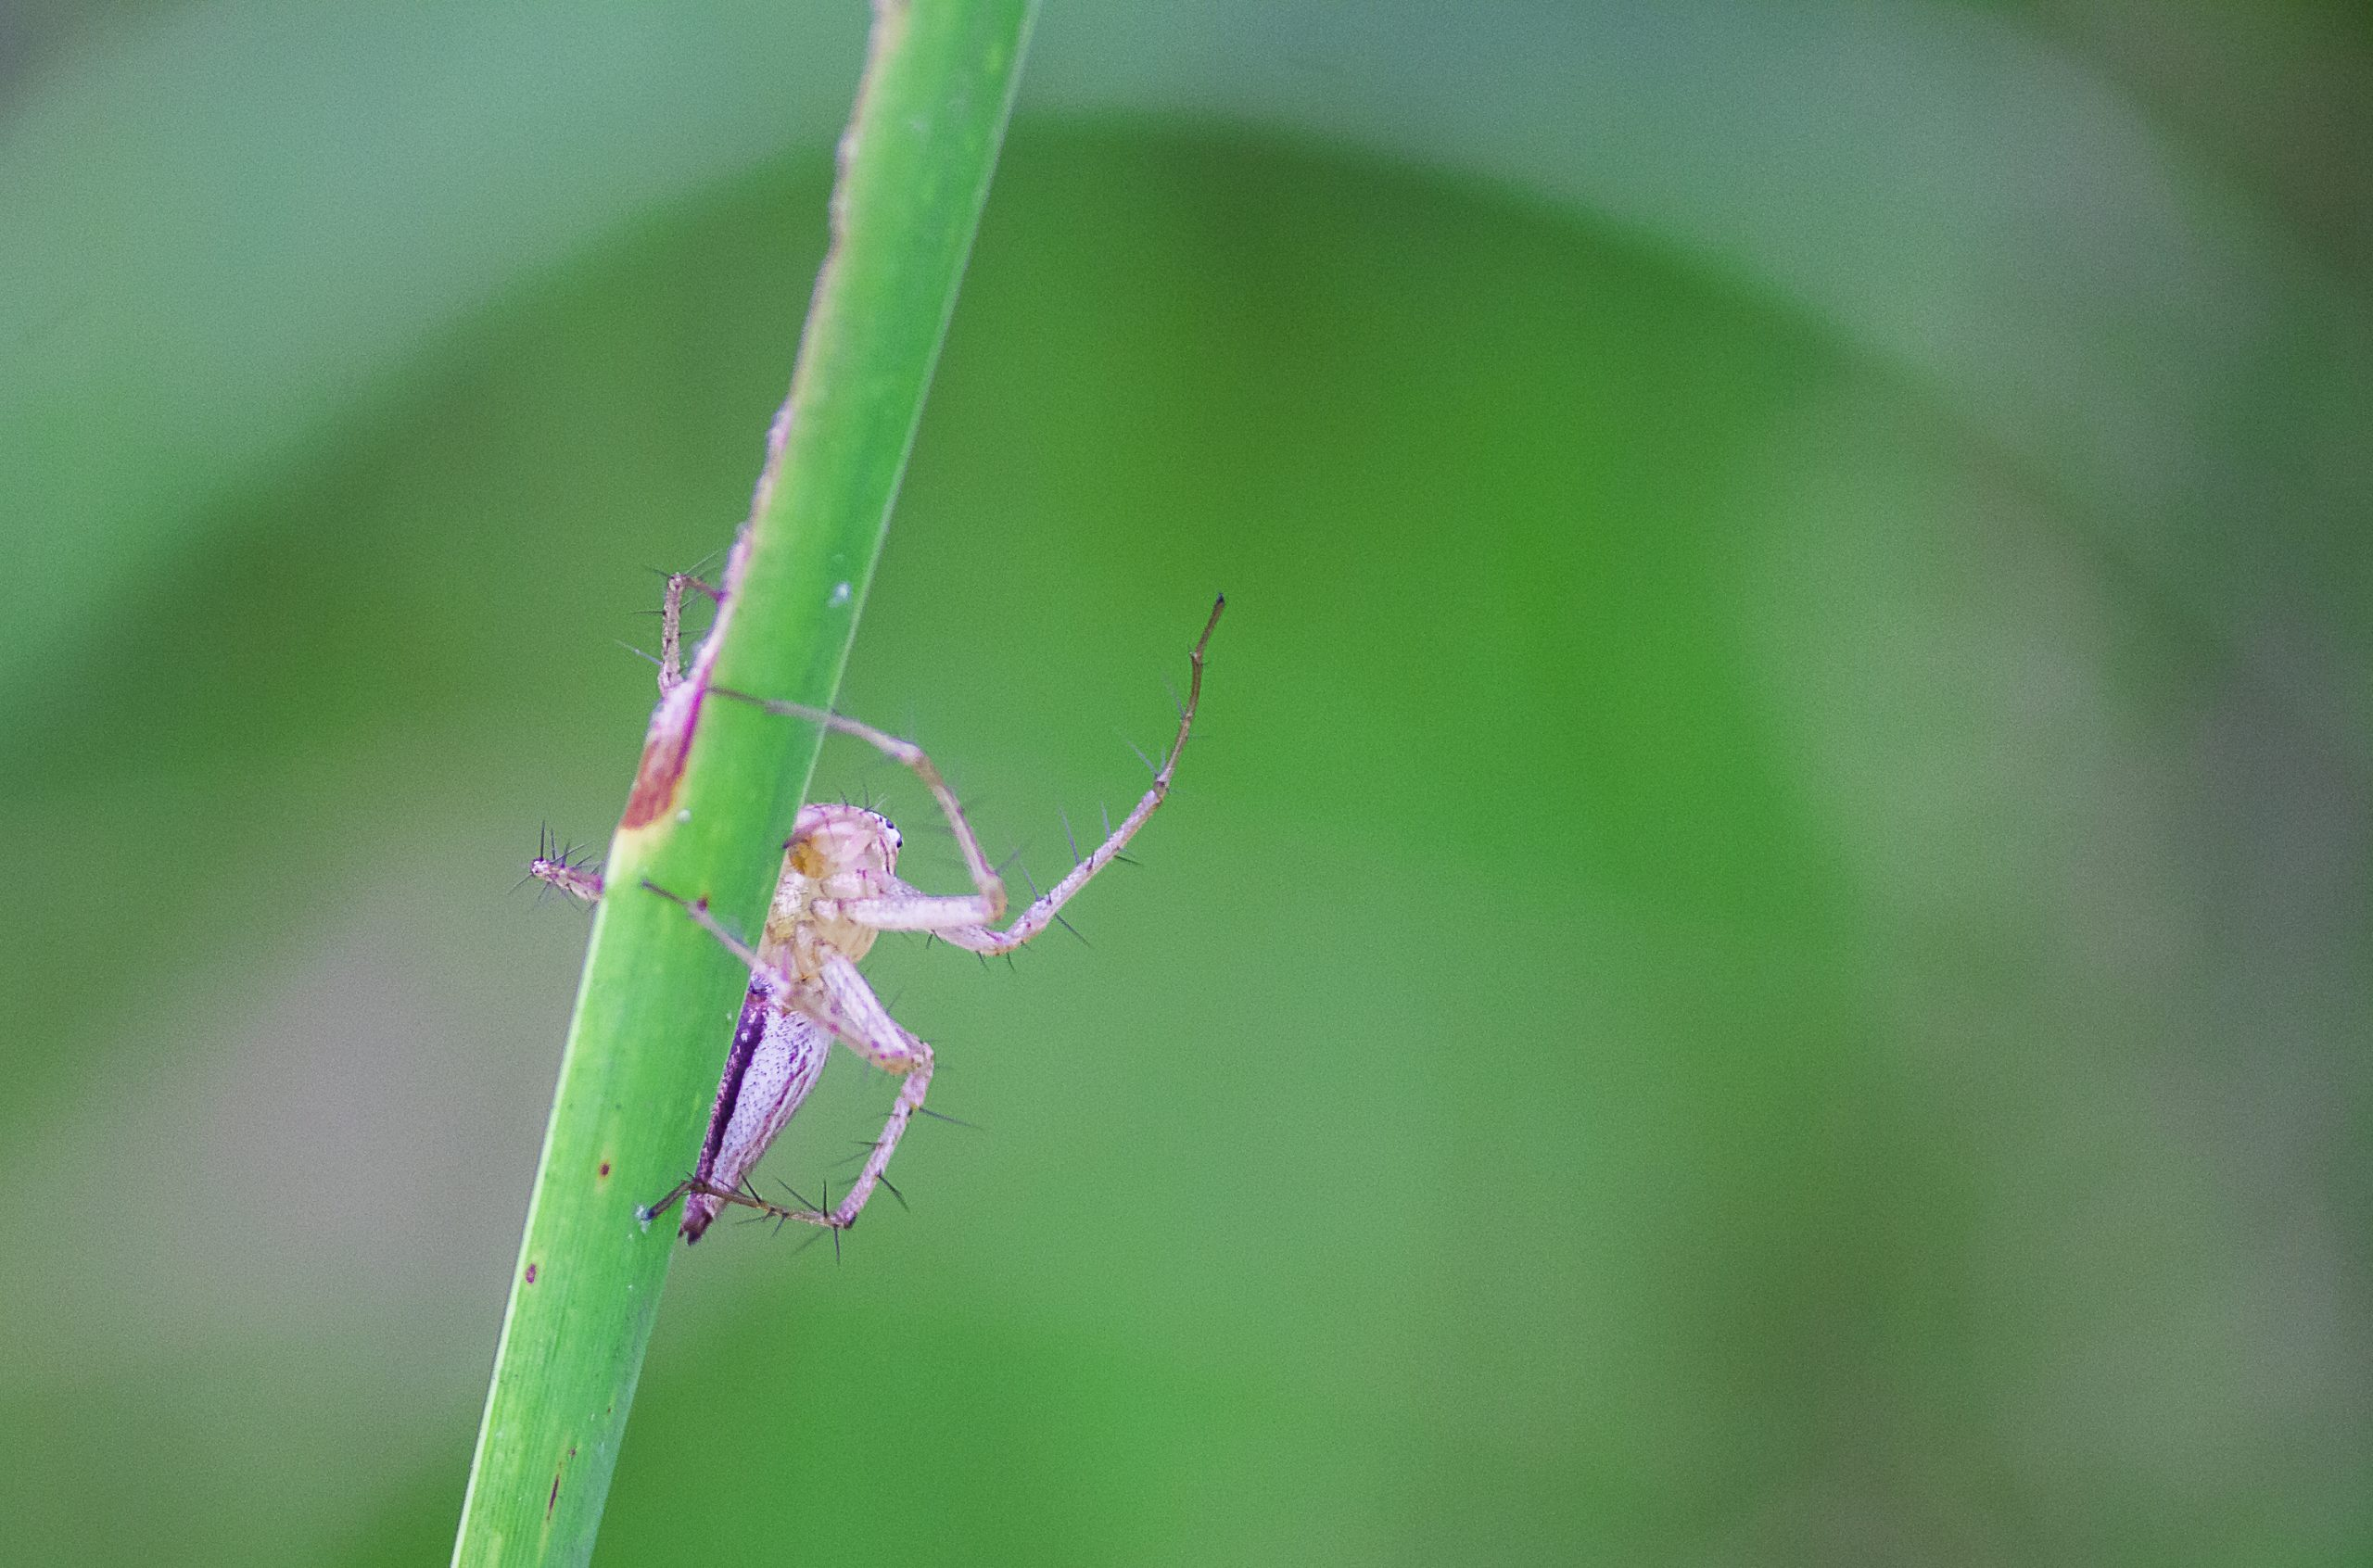 Spider sitting on a Plant Stem